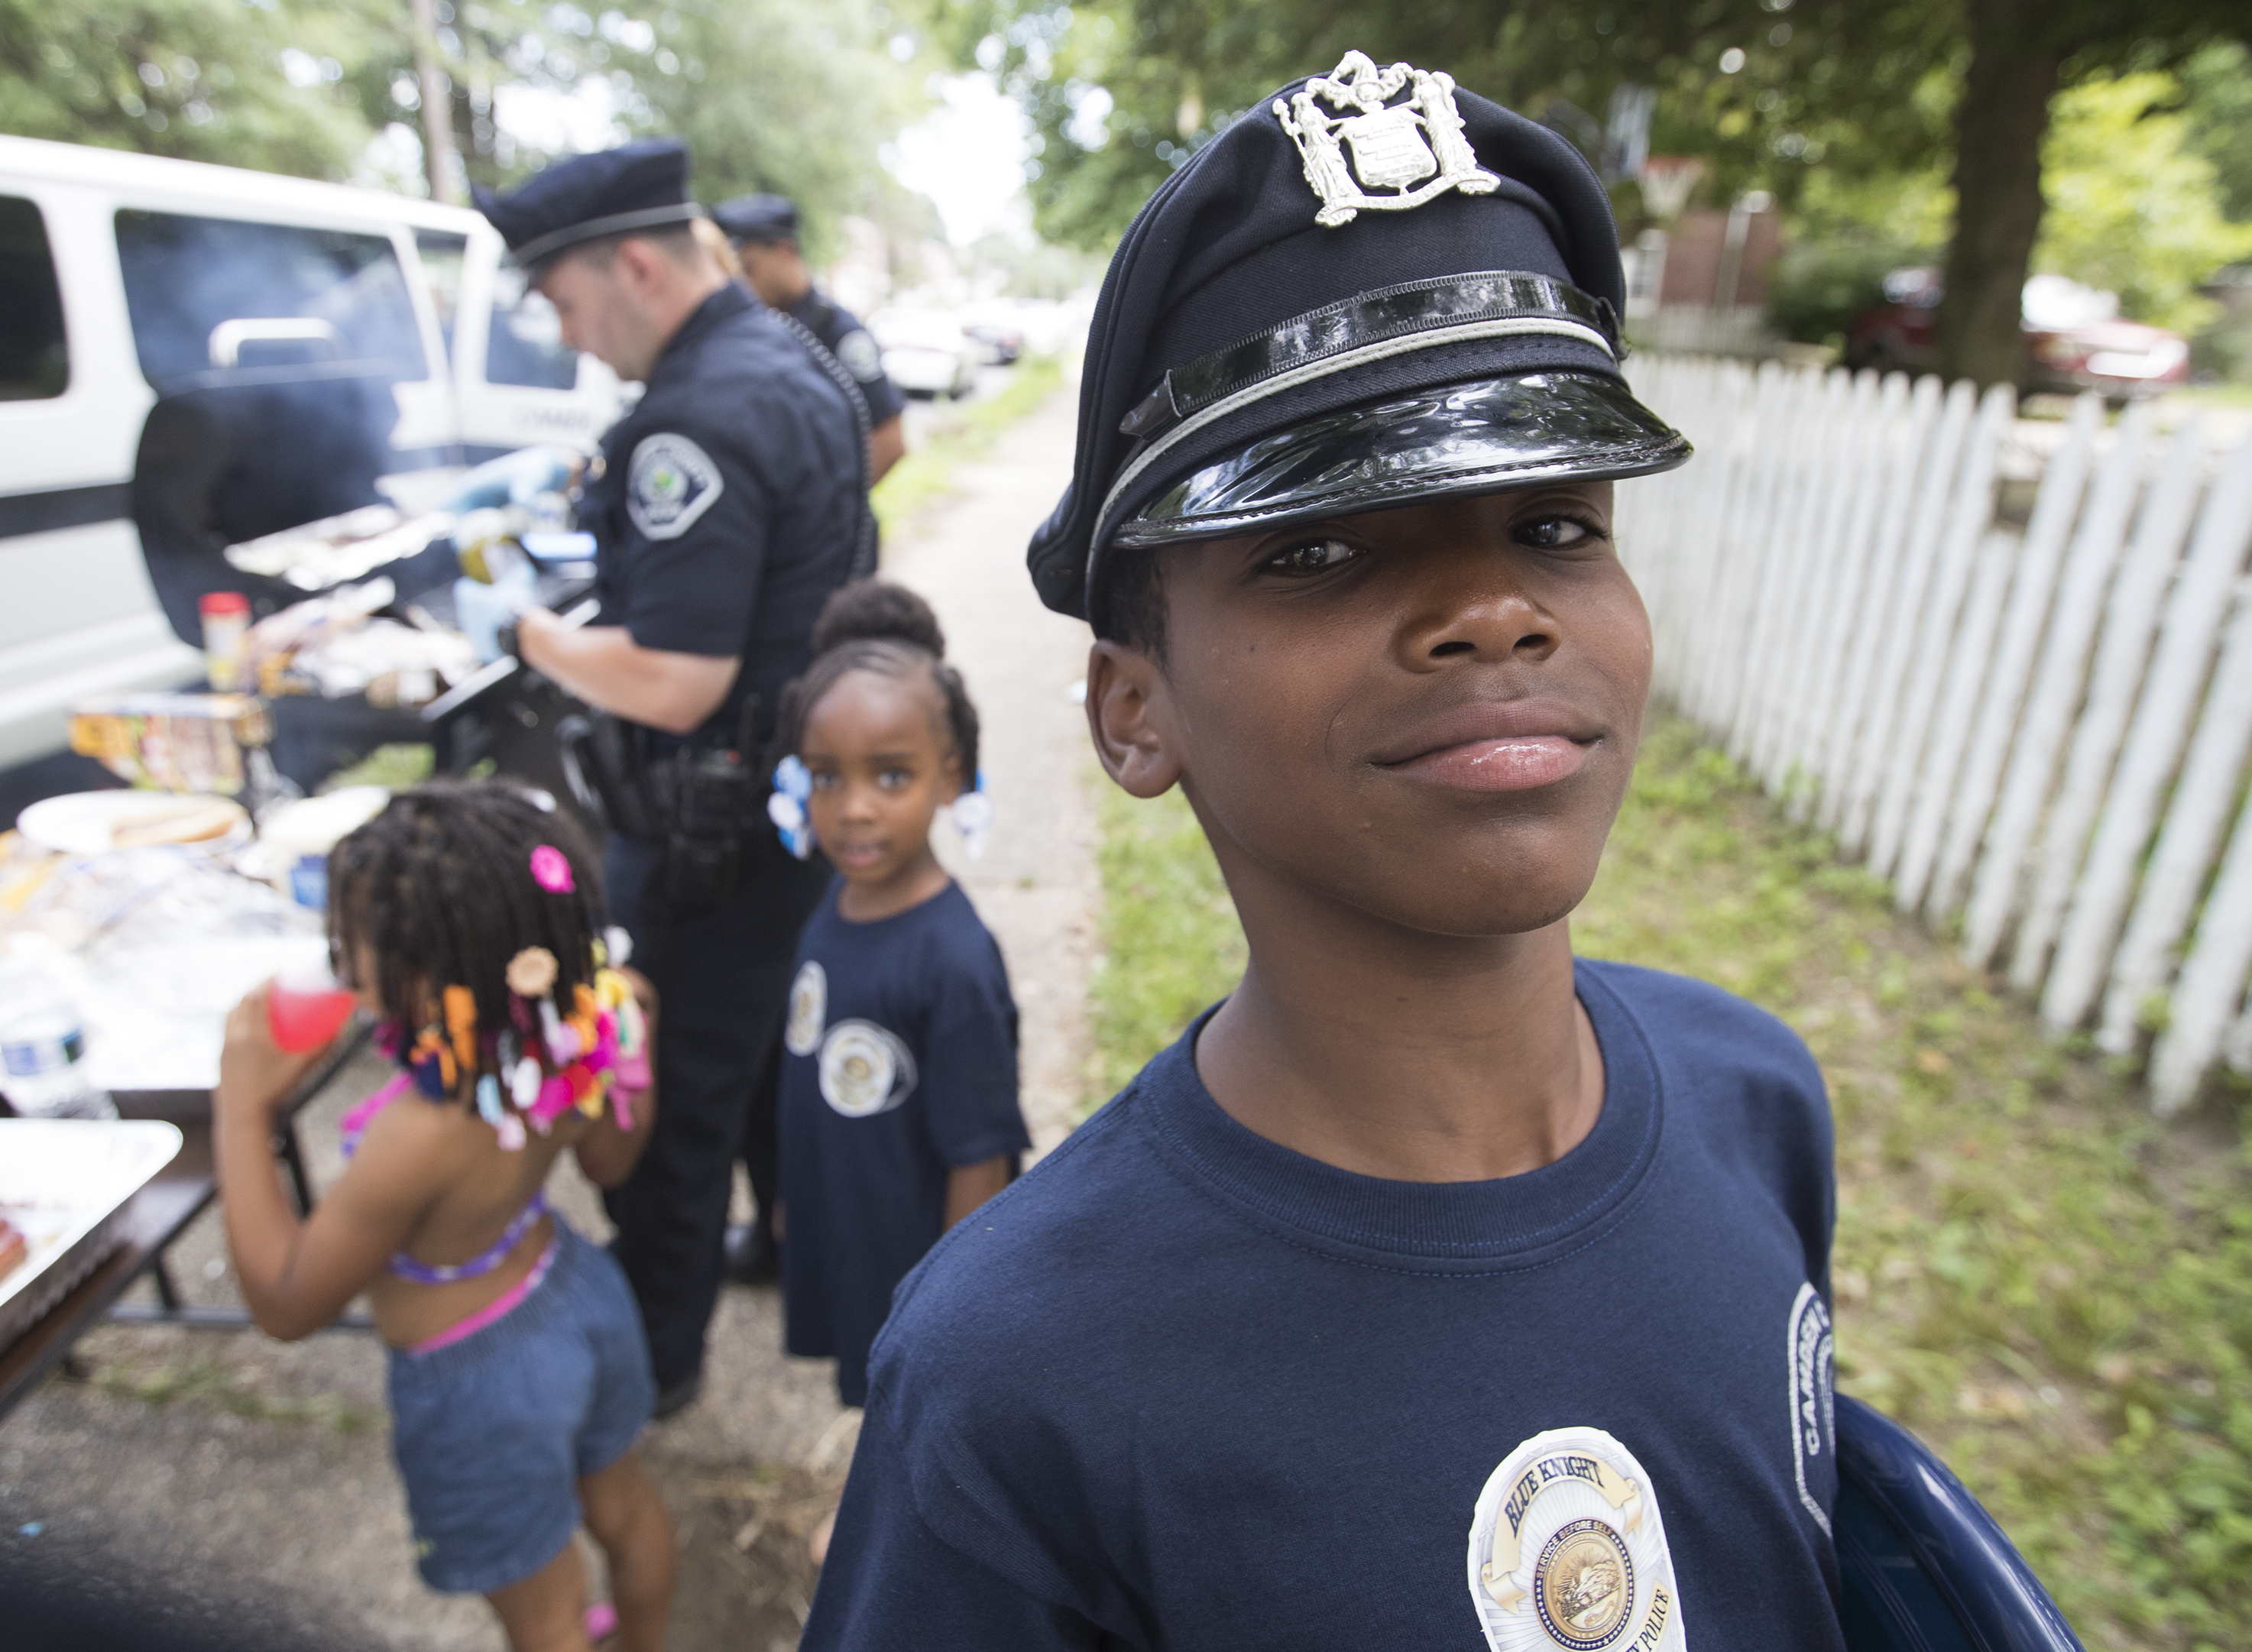 Camden County Police officers grilled hot dogs and hamburgers and gave away T-shirts and stickers in South Camden on Saturday, July 1, 2017. The event  is one of a series of such outreach attempts by the police department to build bonds with the community. Na'zheem Williams, 11, proudly tries on one of the officers´ hats.